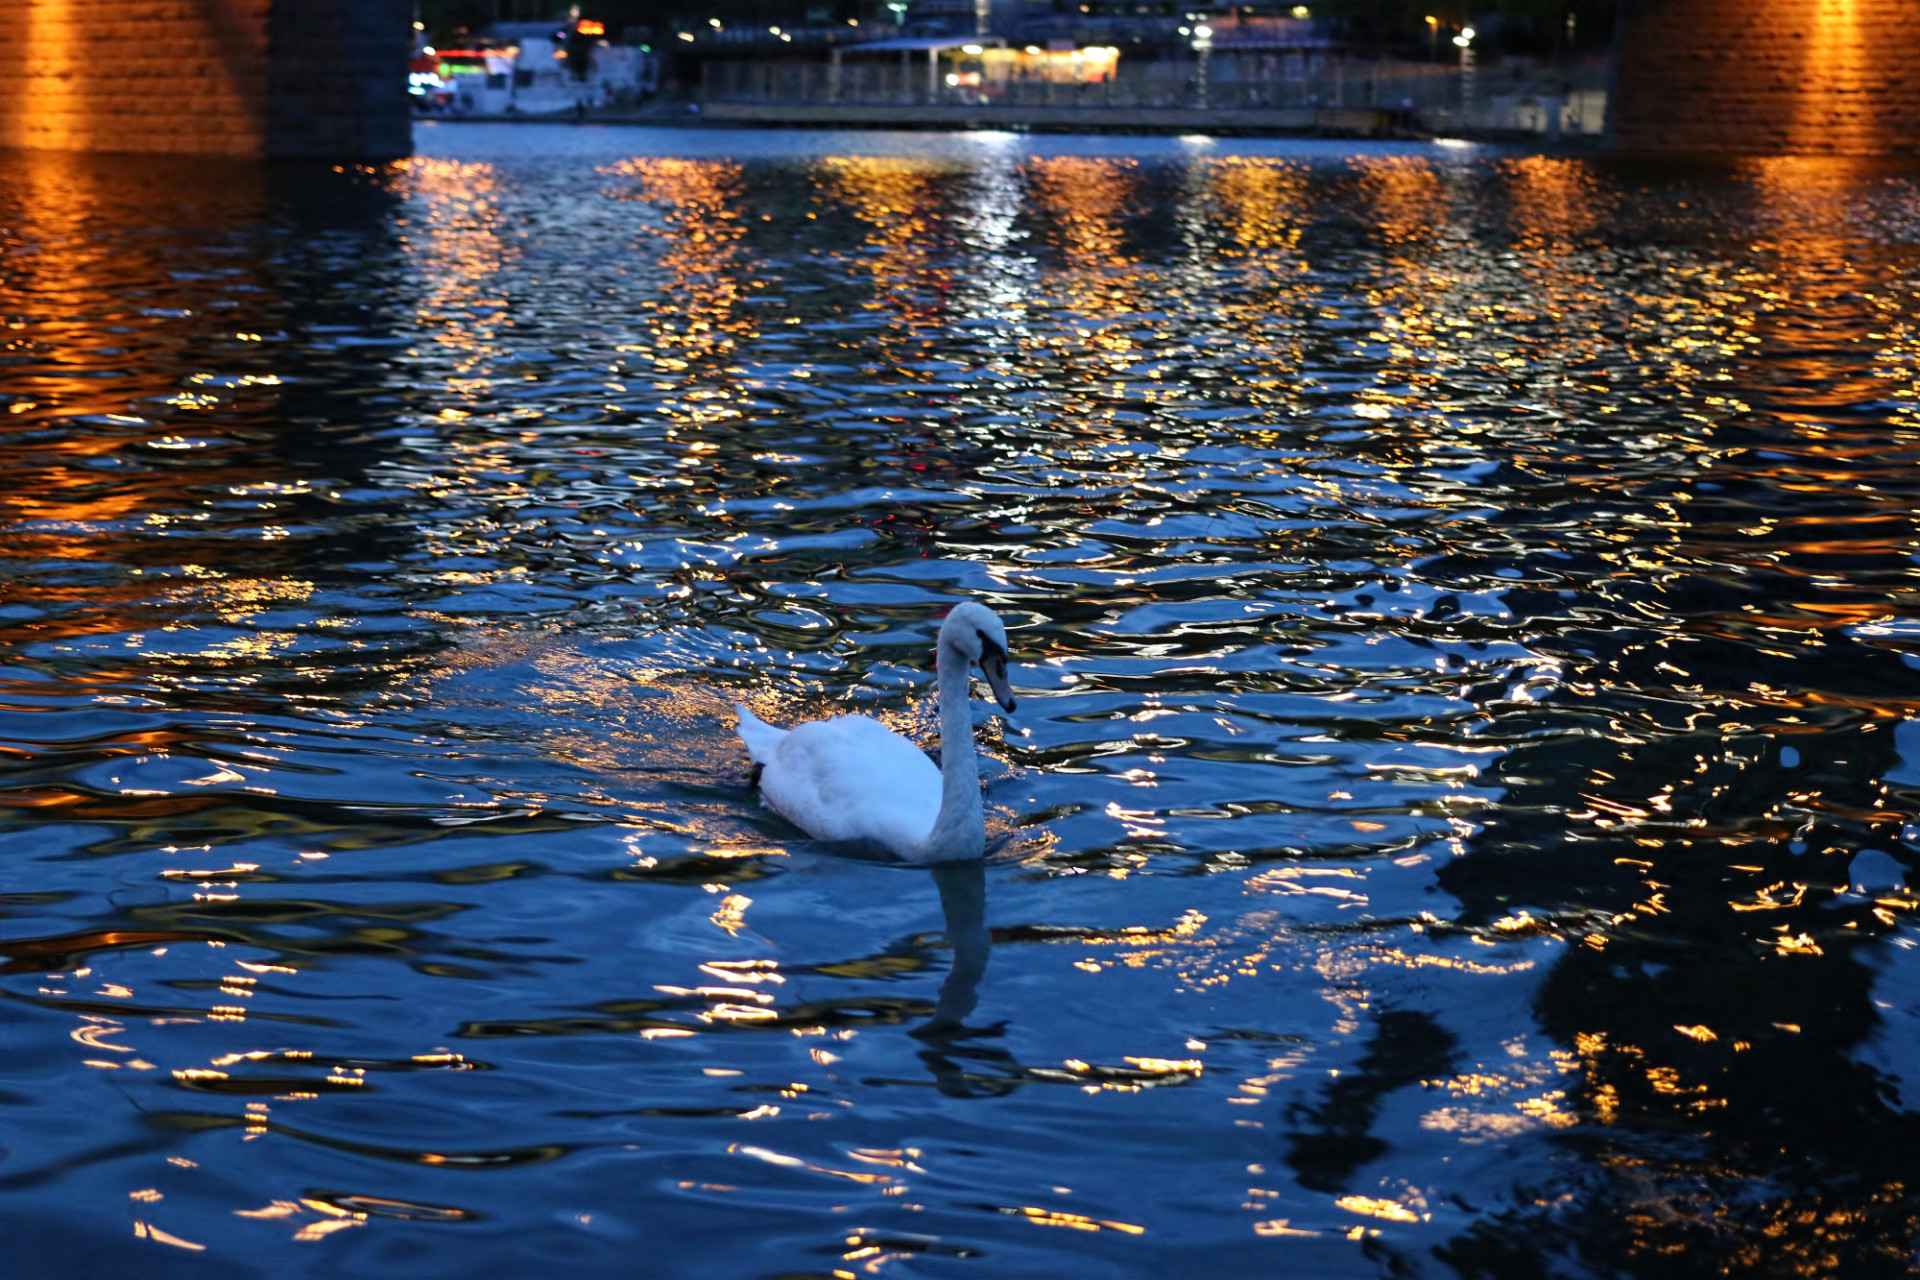 A swan on the Danube in Vienna